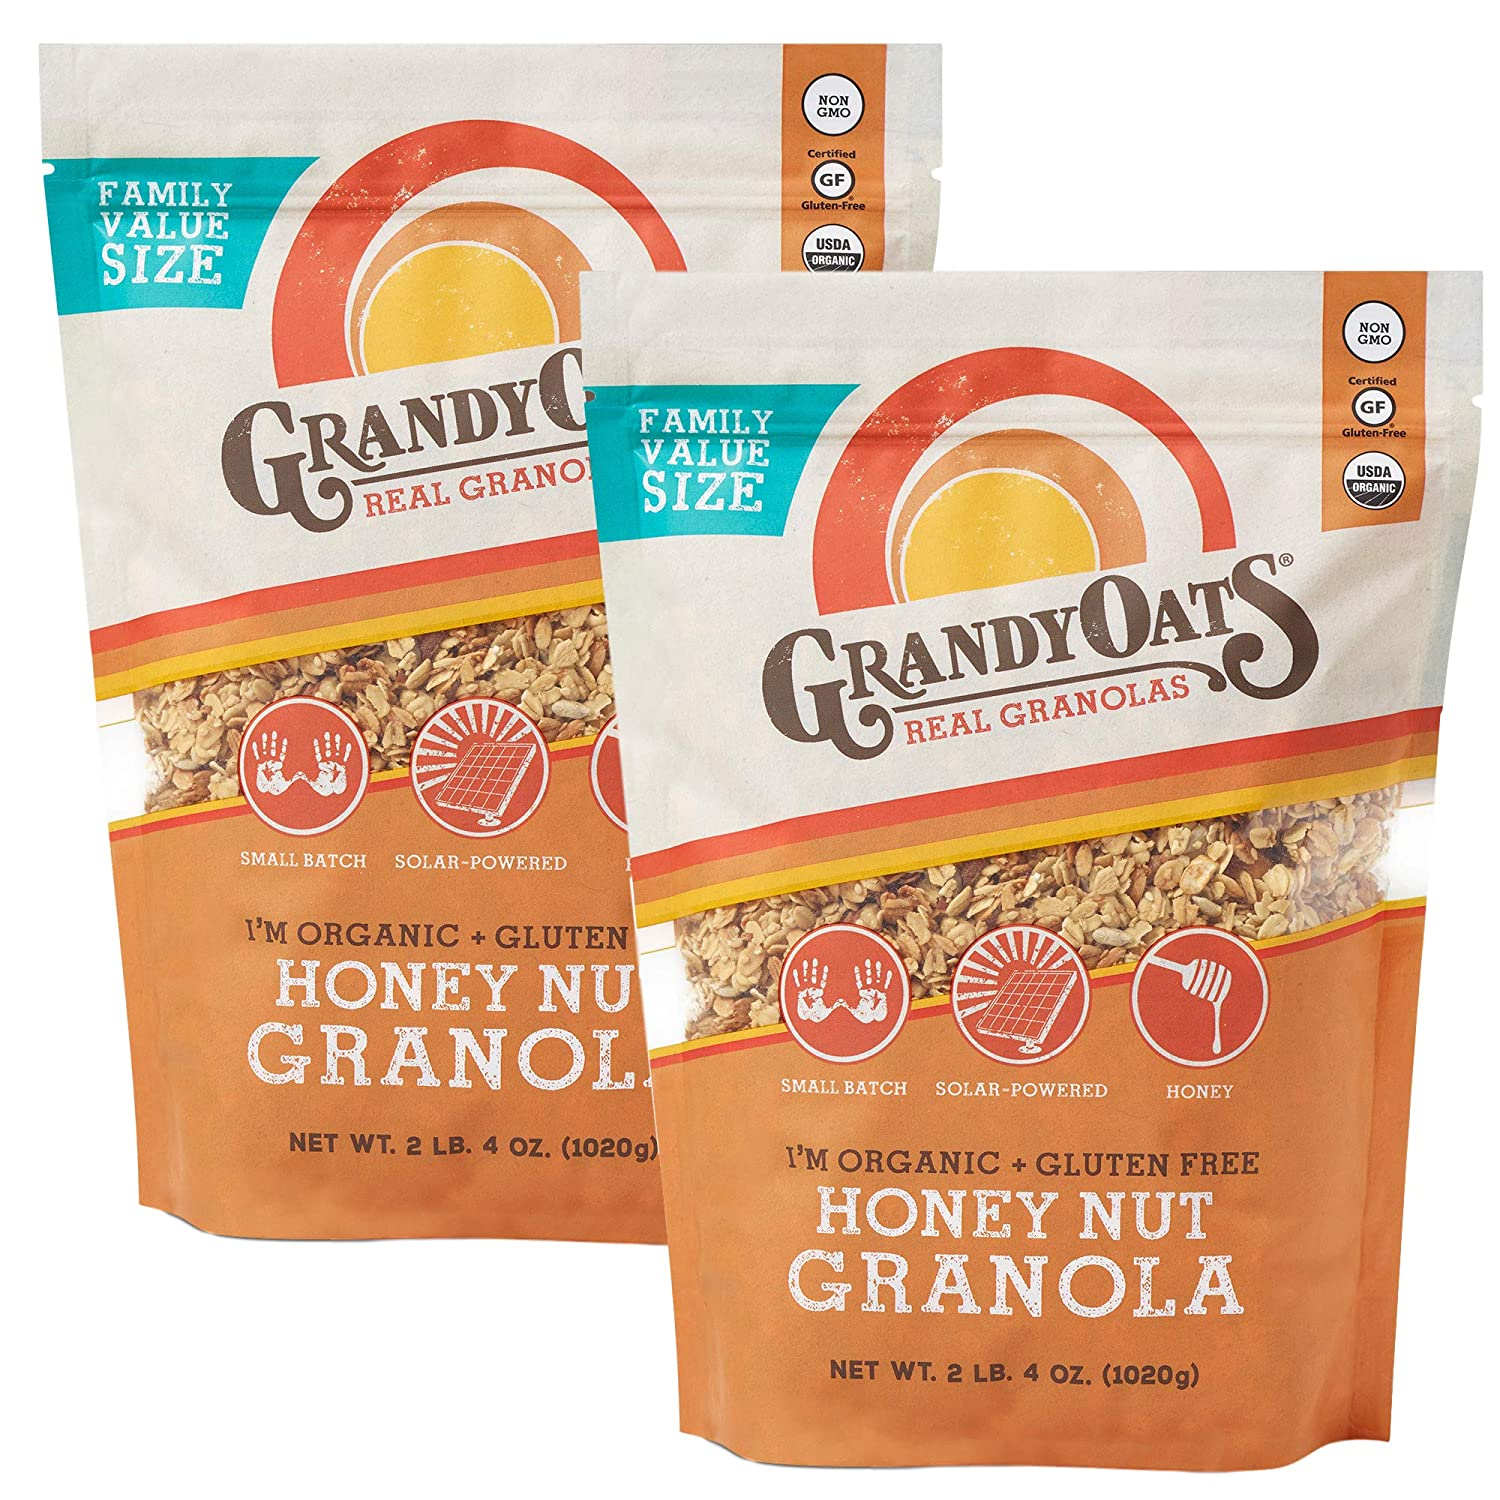 GrandyOats Honey Nut Gluten Free Granola - Certified Organic, Non-GMO, Family Value Size 36oz Bags, Bulk Pack of 2